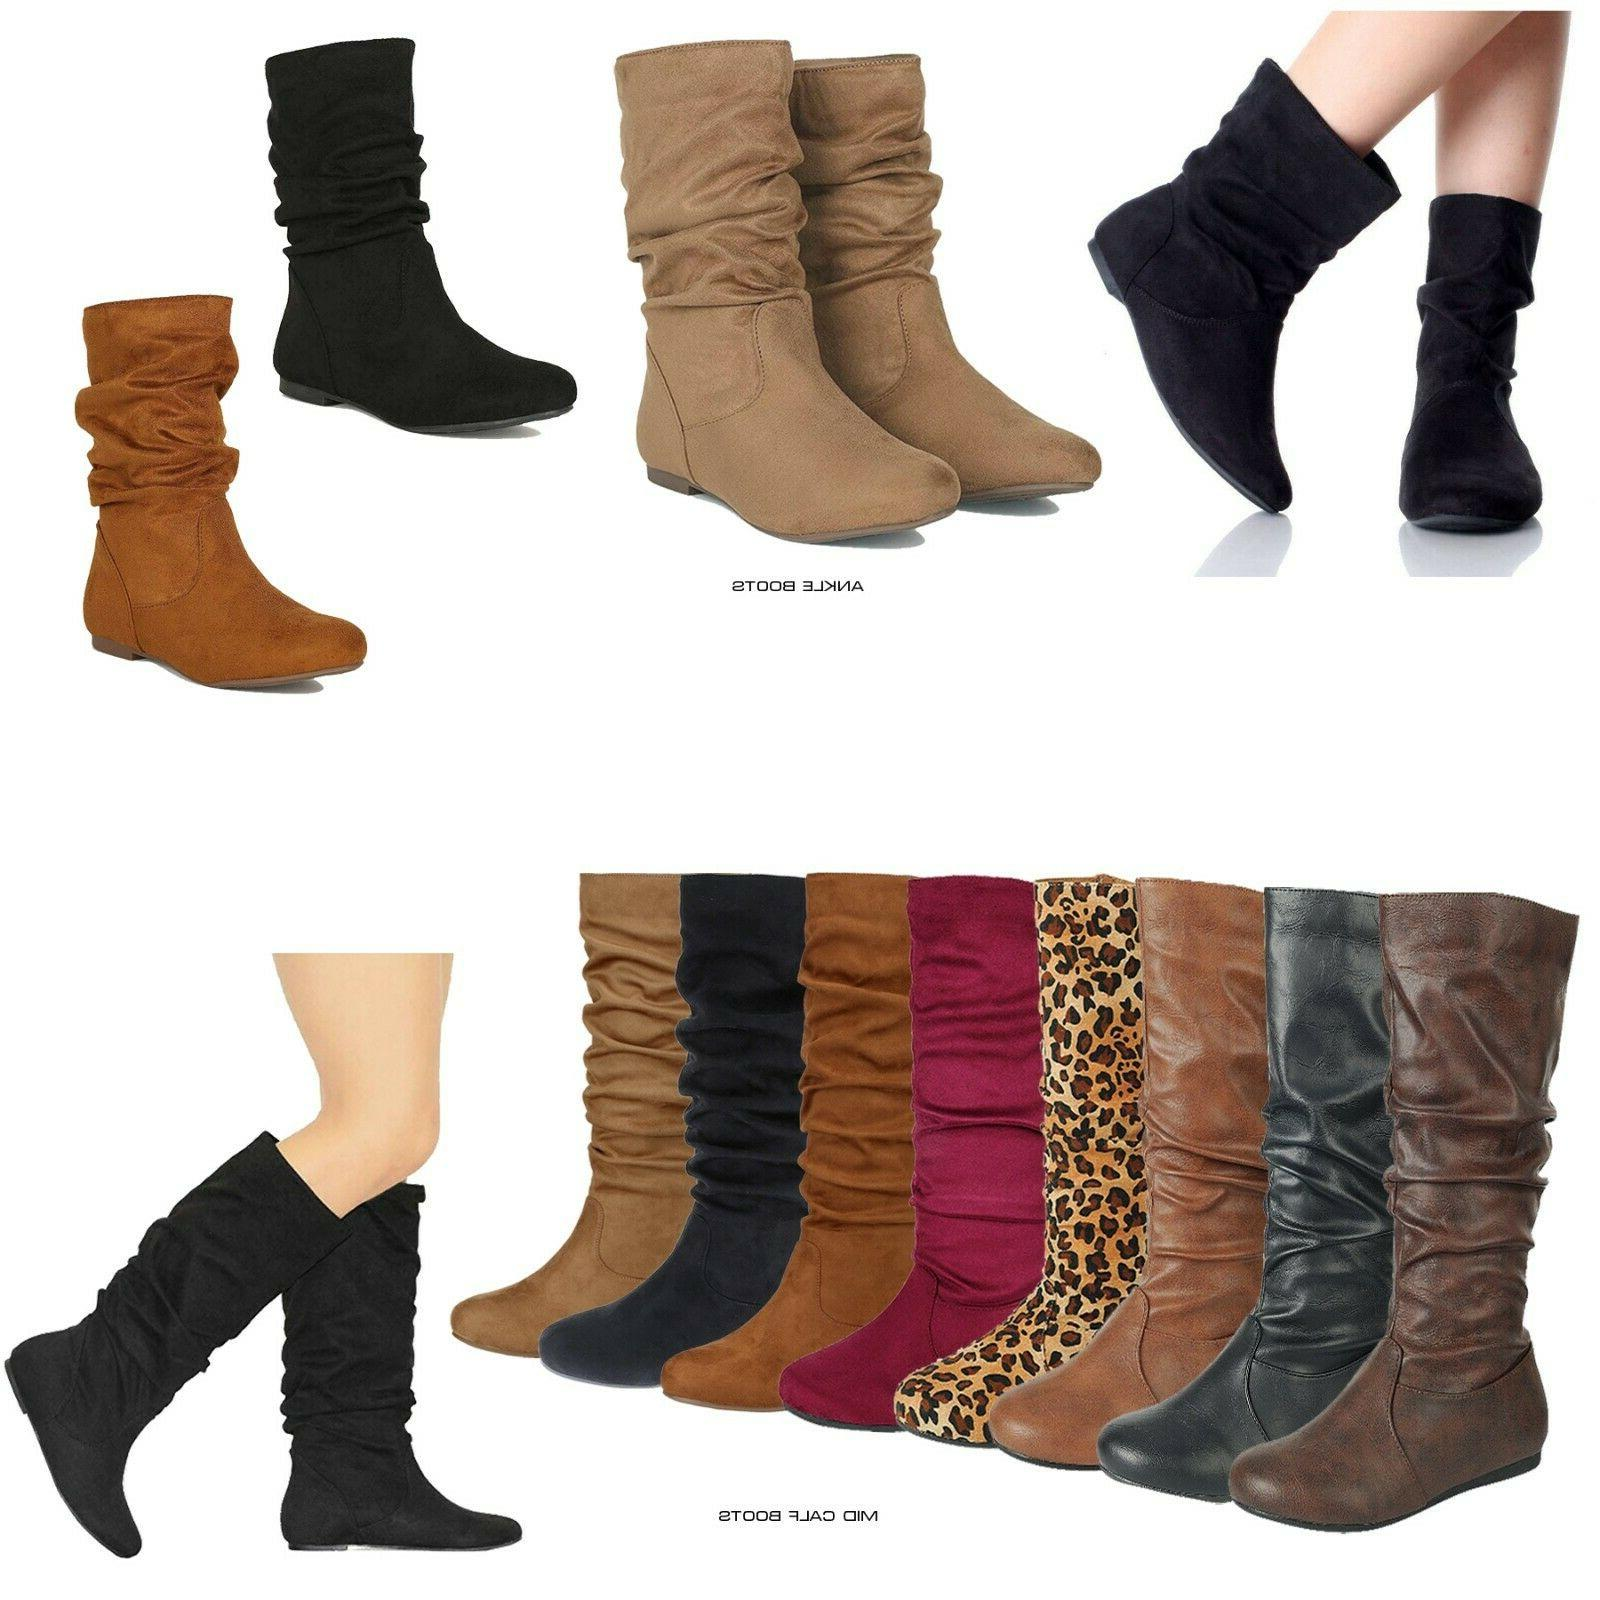 new women ankle boots or mid calf